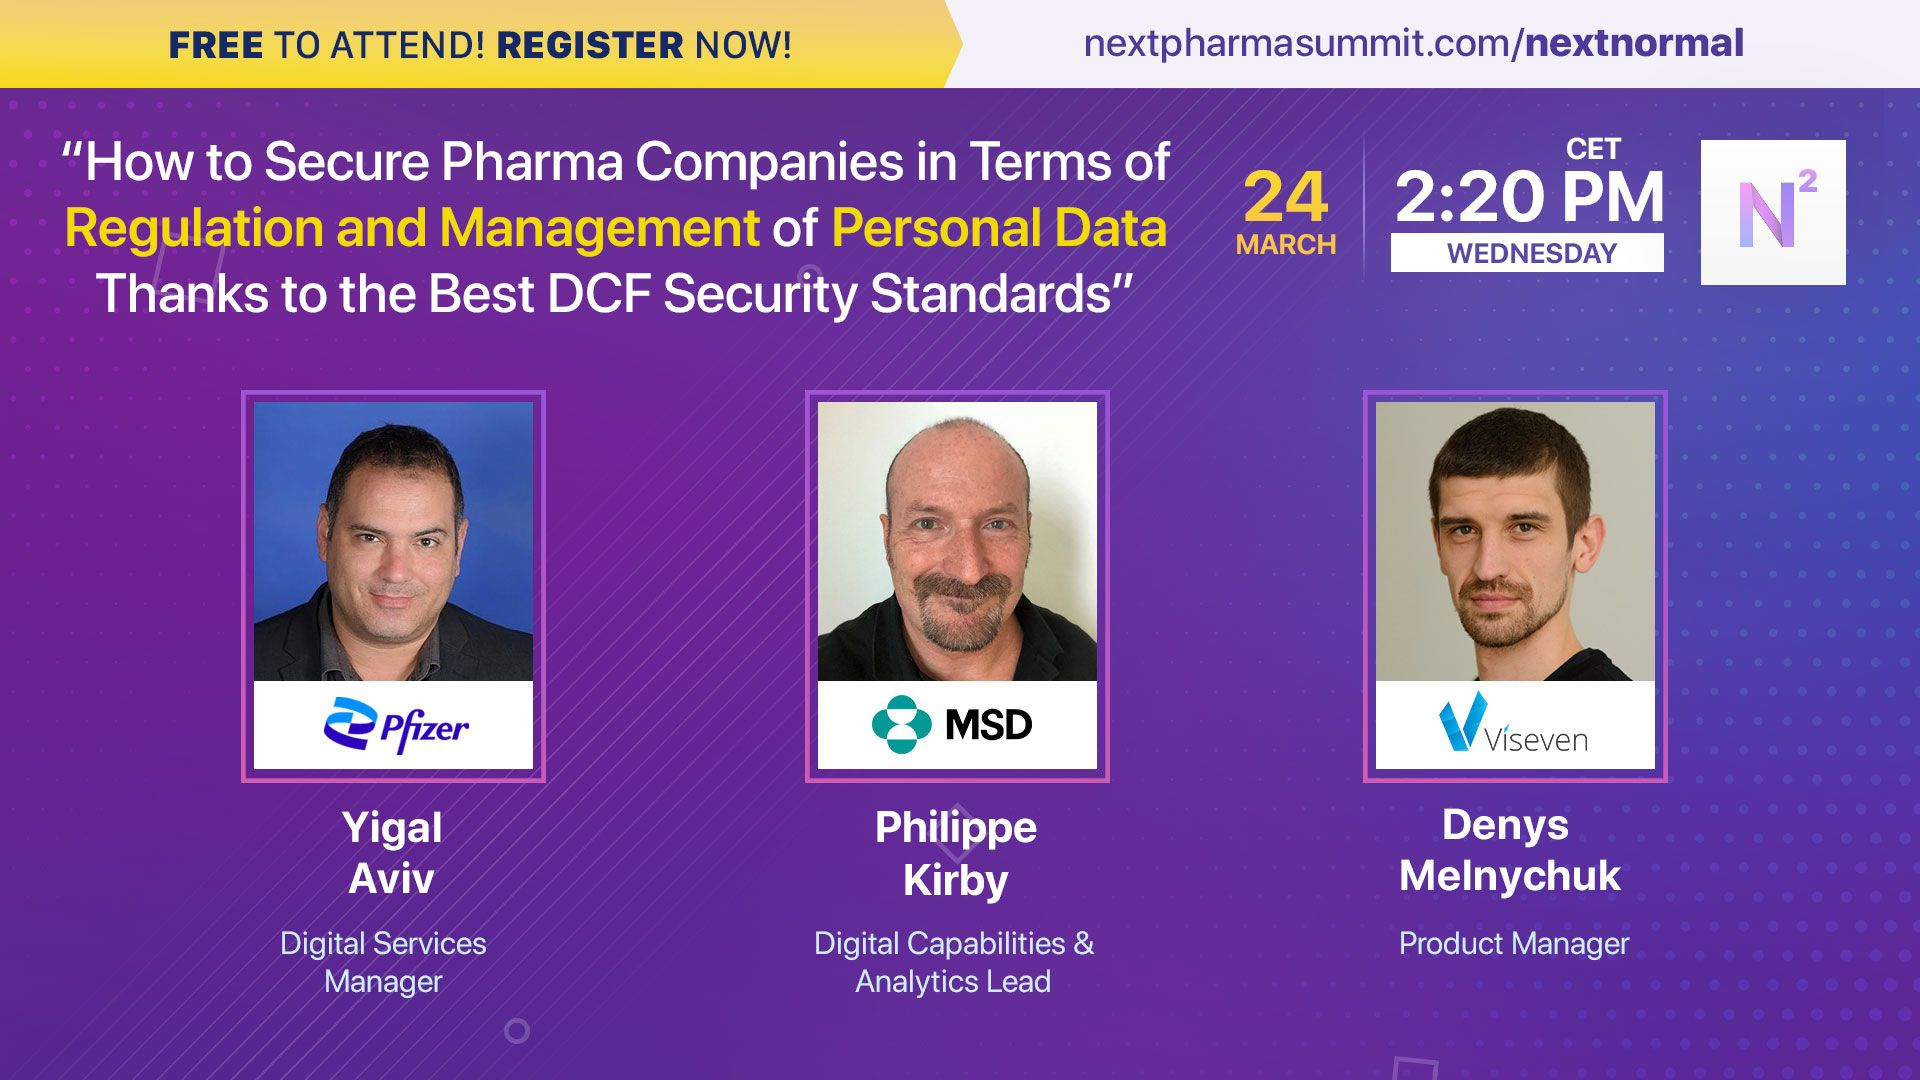 NEXT Normal Week: Secure Pharma Companies in Terms of Regulation and Management of Personal Data Thanks to the Best DCF Security Standards